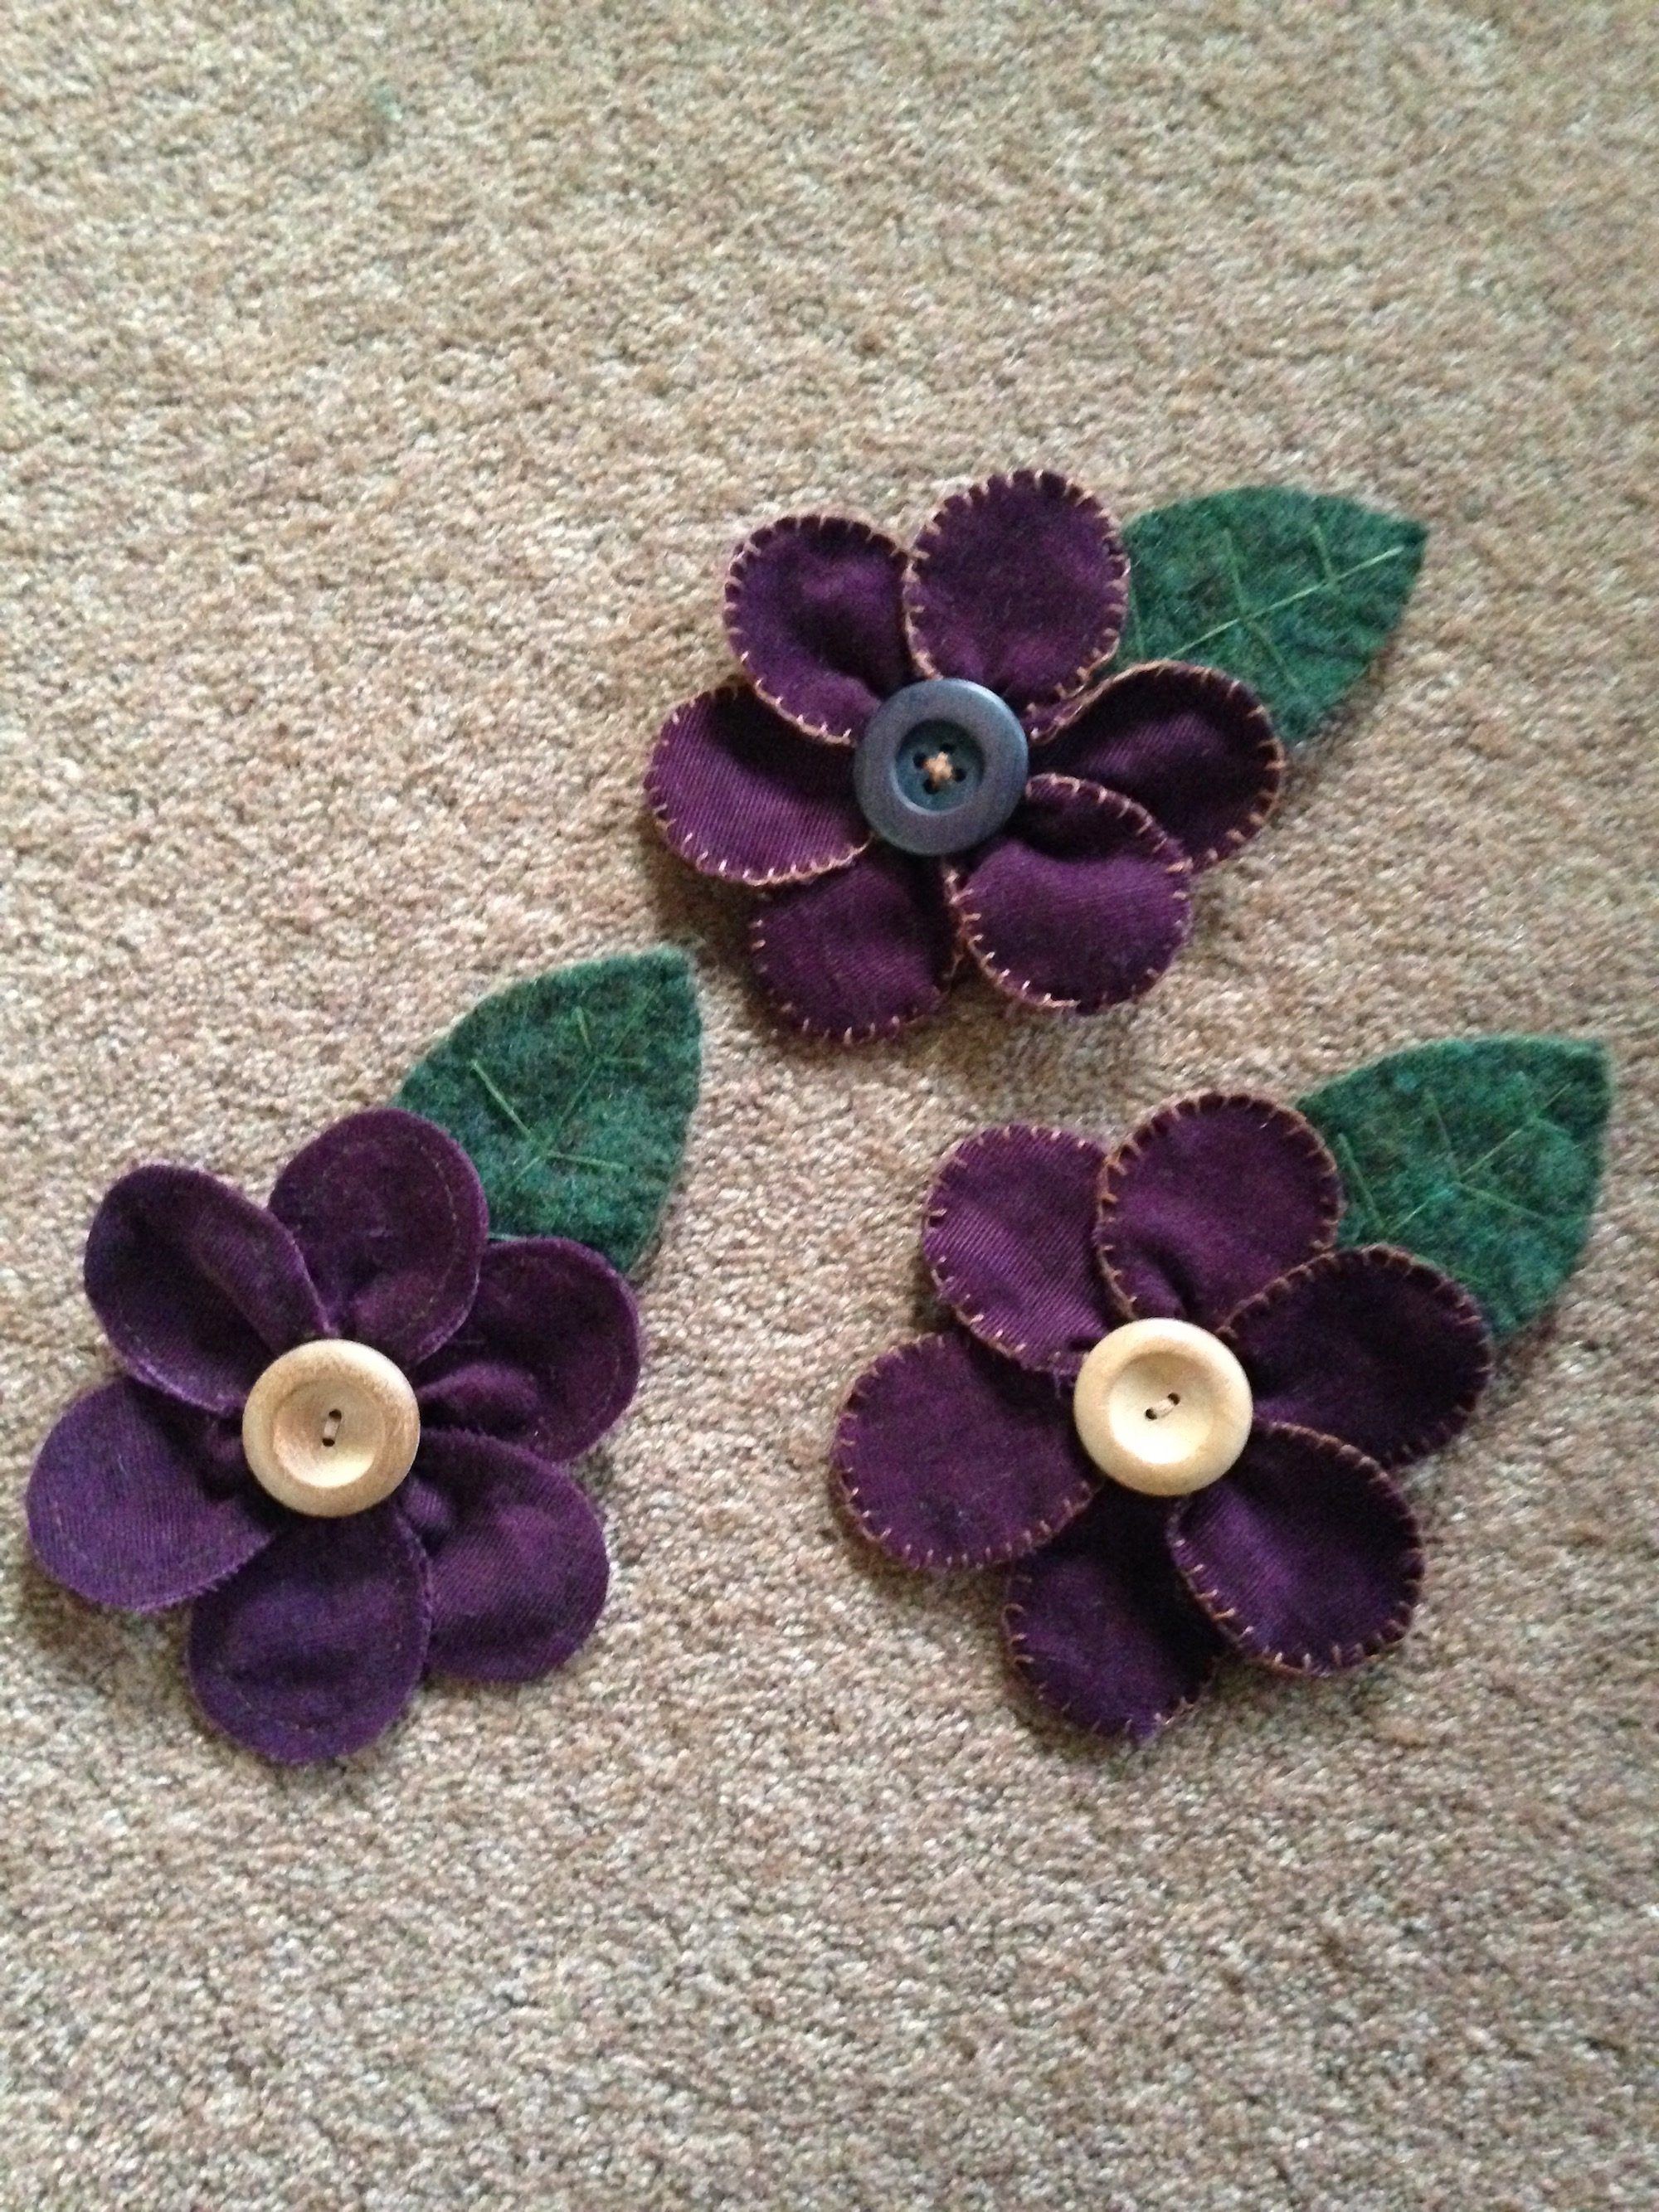 Memory flower brooches.